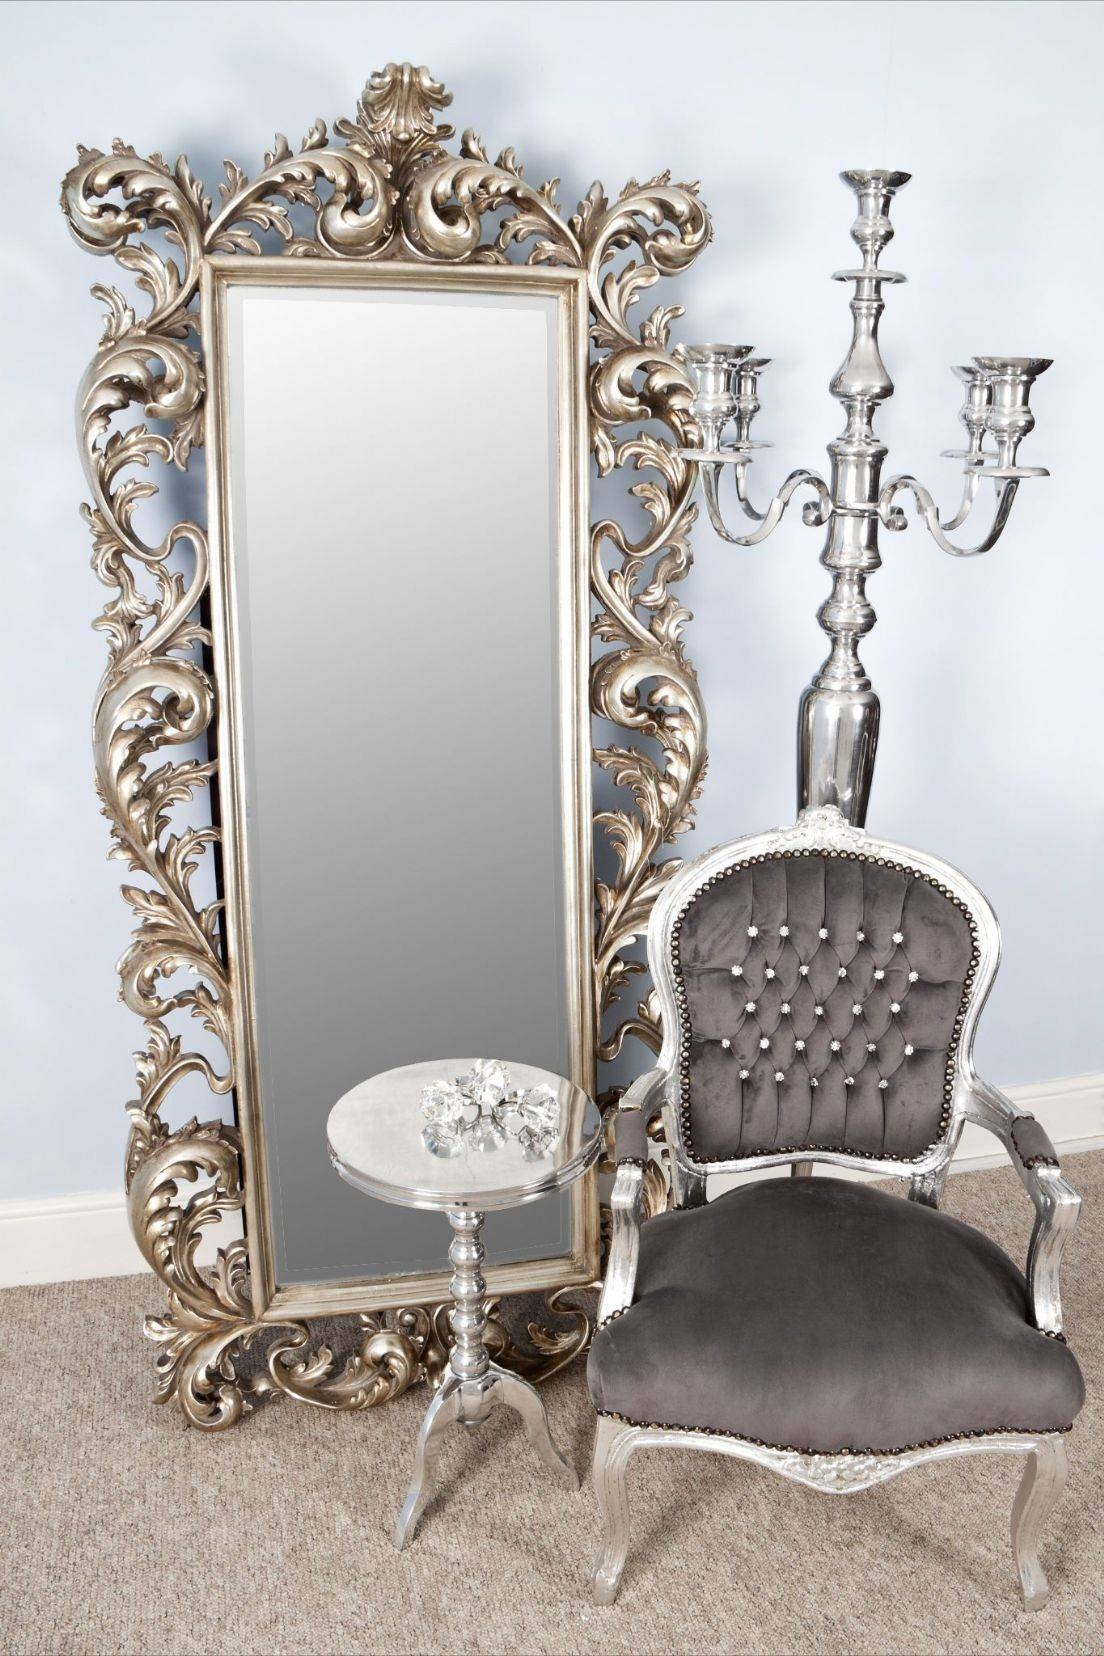 Rococo Mirrors | Exclusive Mirrors regarding Rococo Style Mirrors (Image 9 of 15)